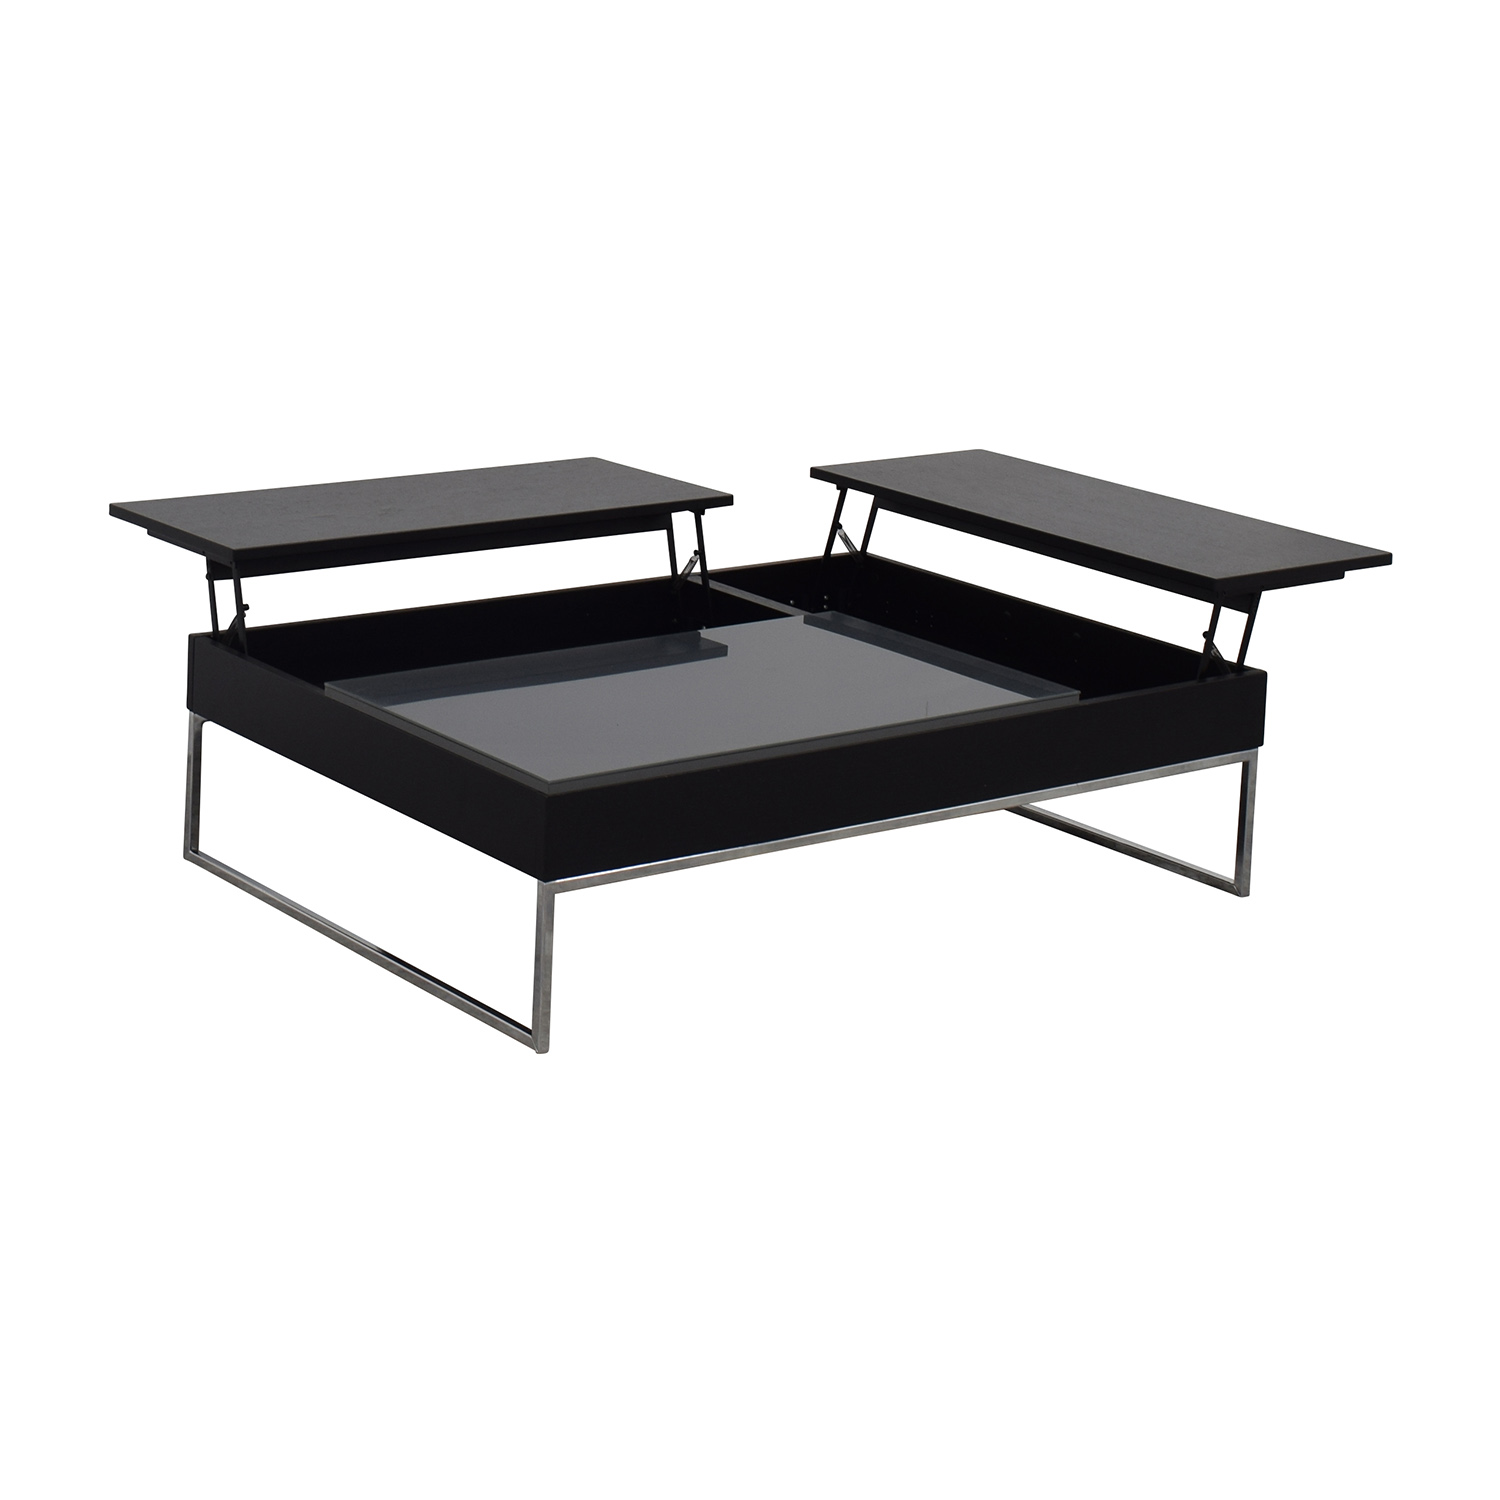 Boconcept Couchtisch Chiva 77% Off - Boconcept Boconcept Chiva Storage Coffee Table